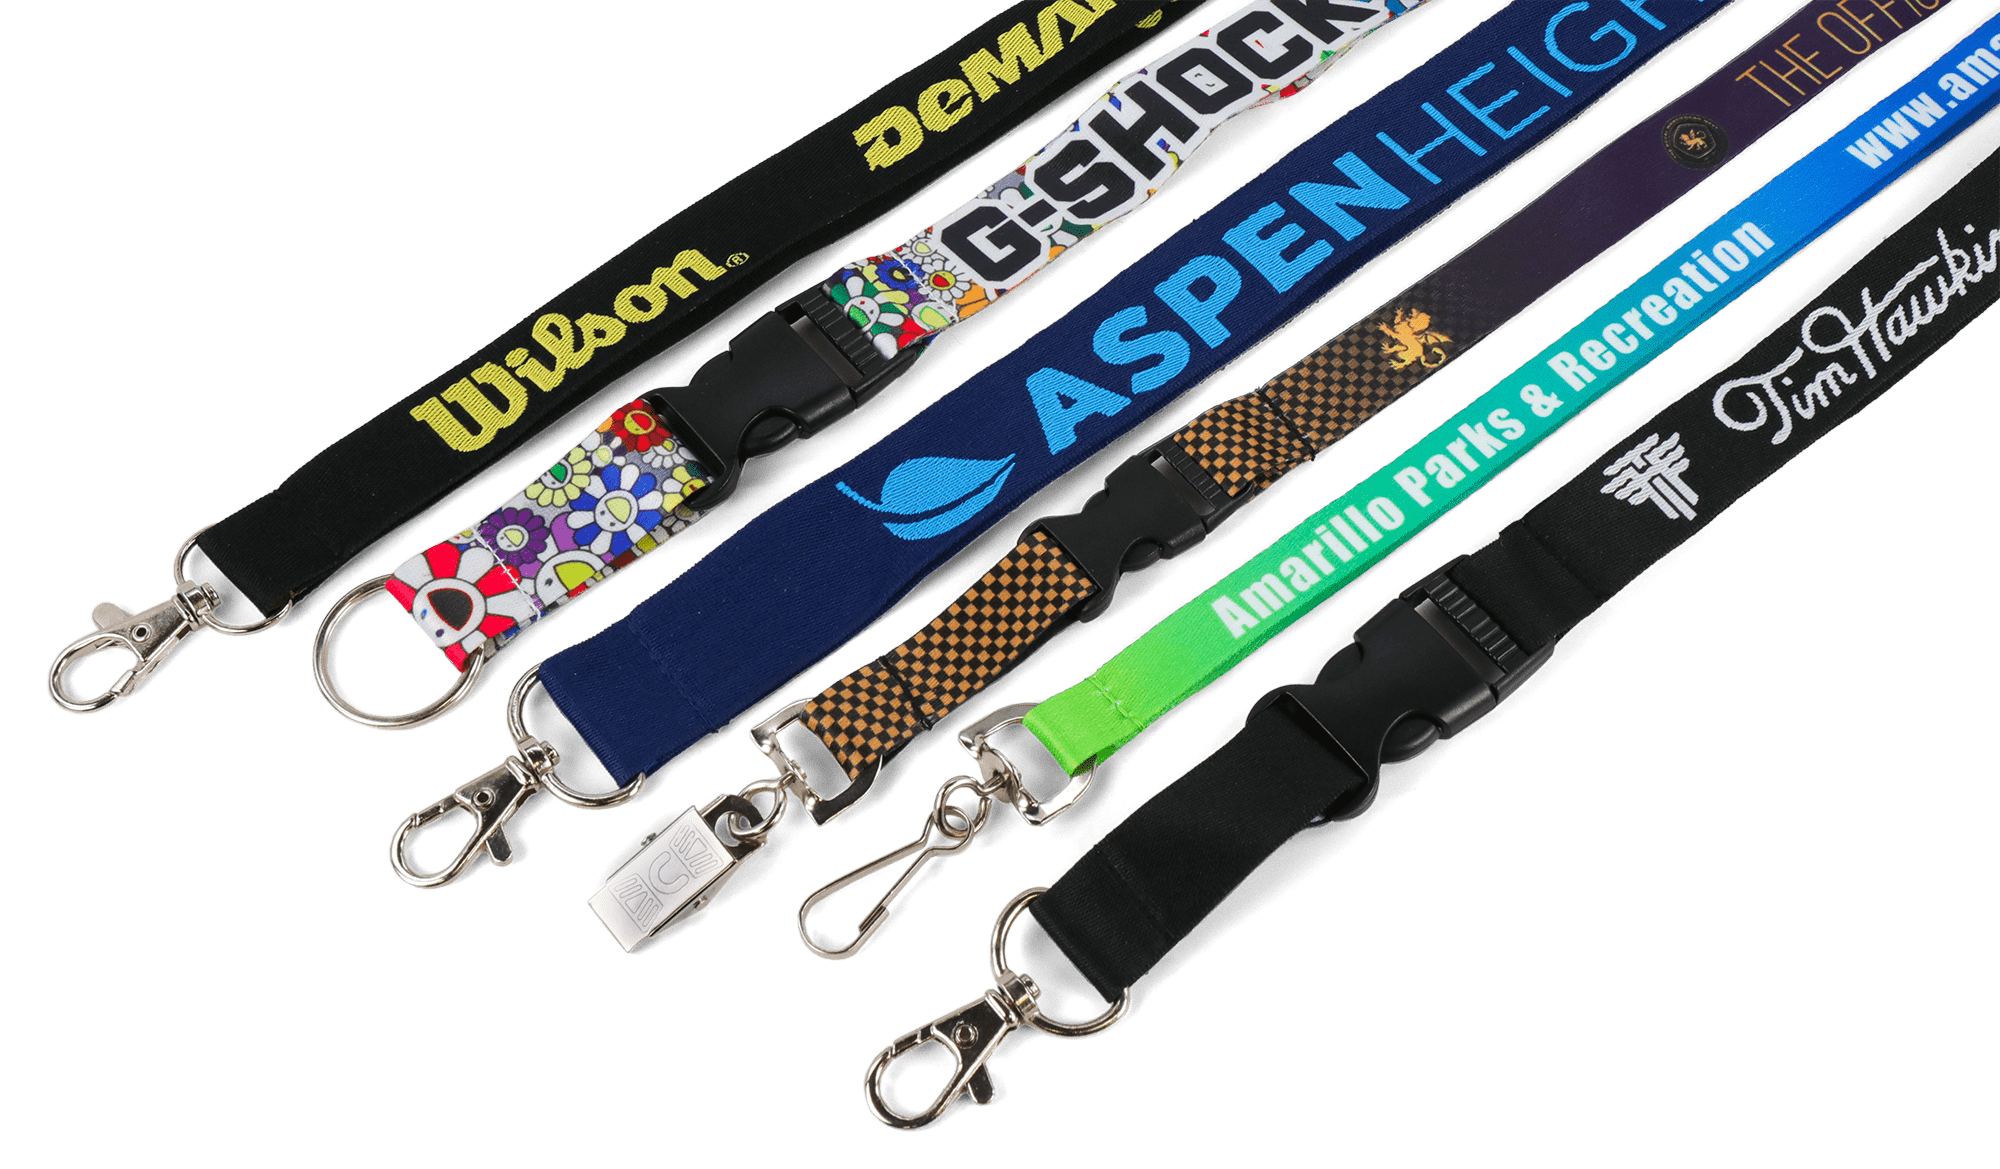 6 different lanyard styles